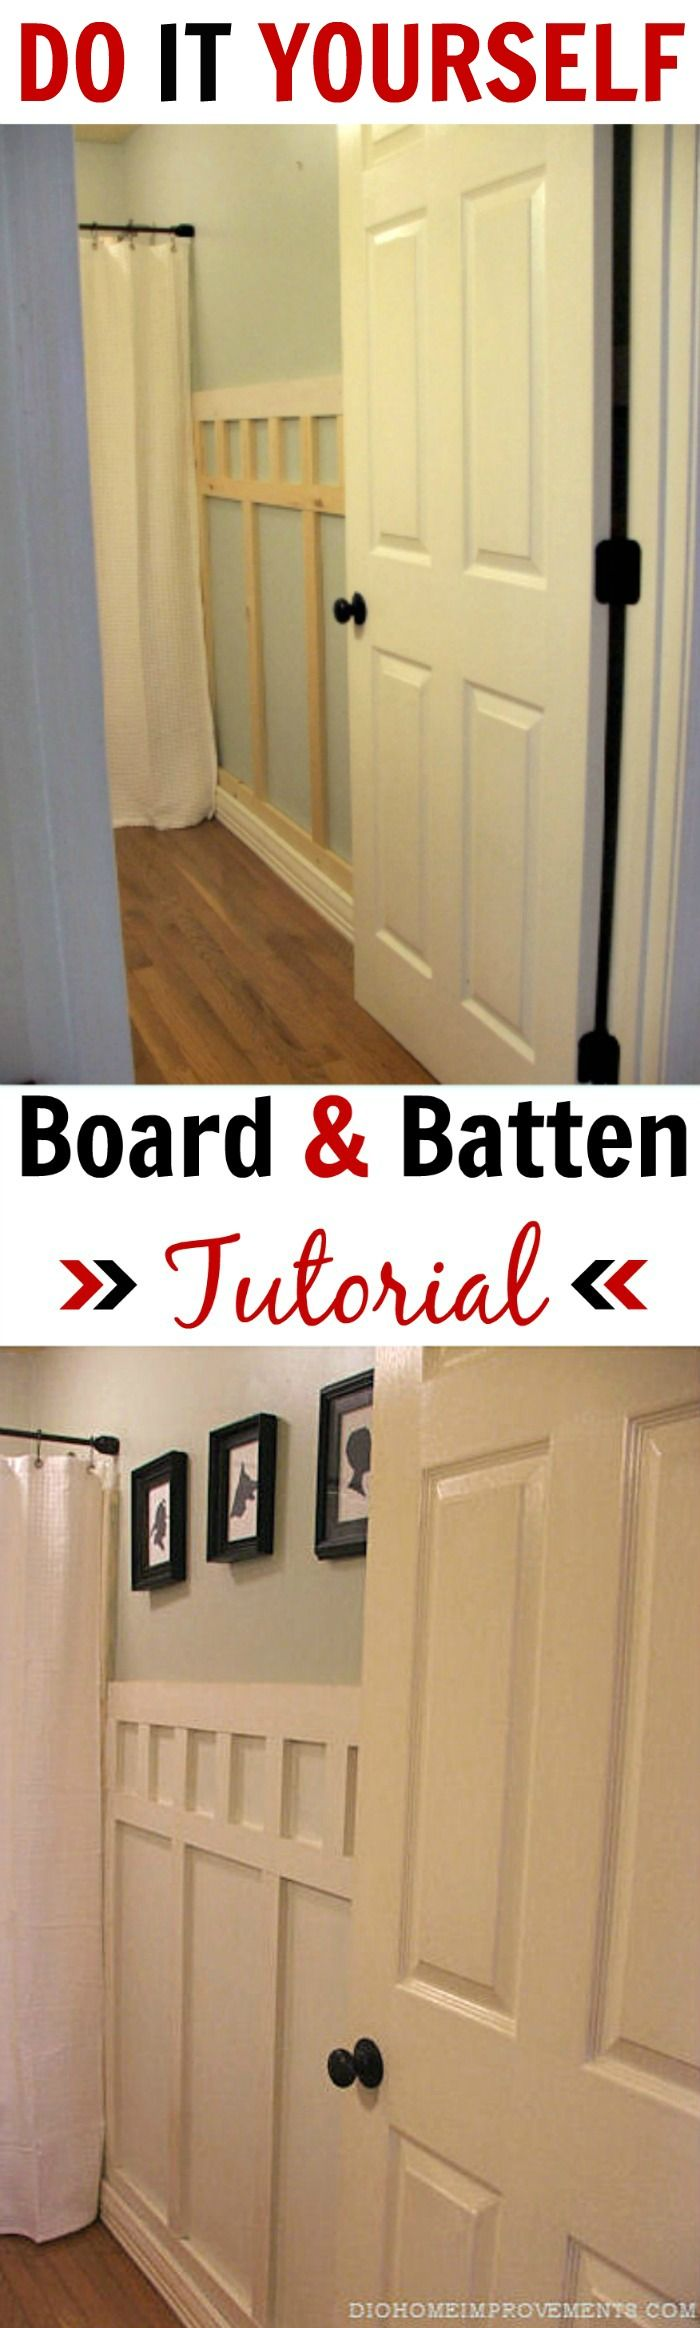 Filed under board and batten wainscoting diy diy projects - Diy Board And Batten Tutorial